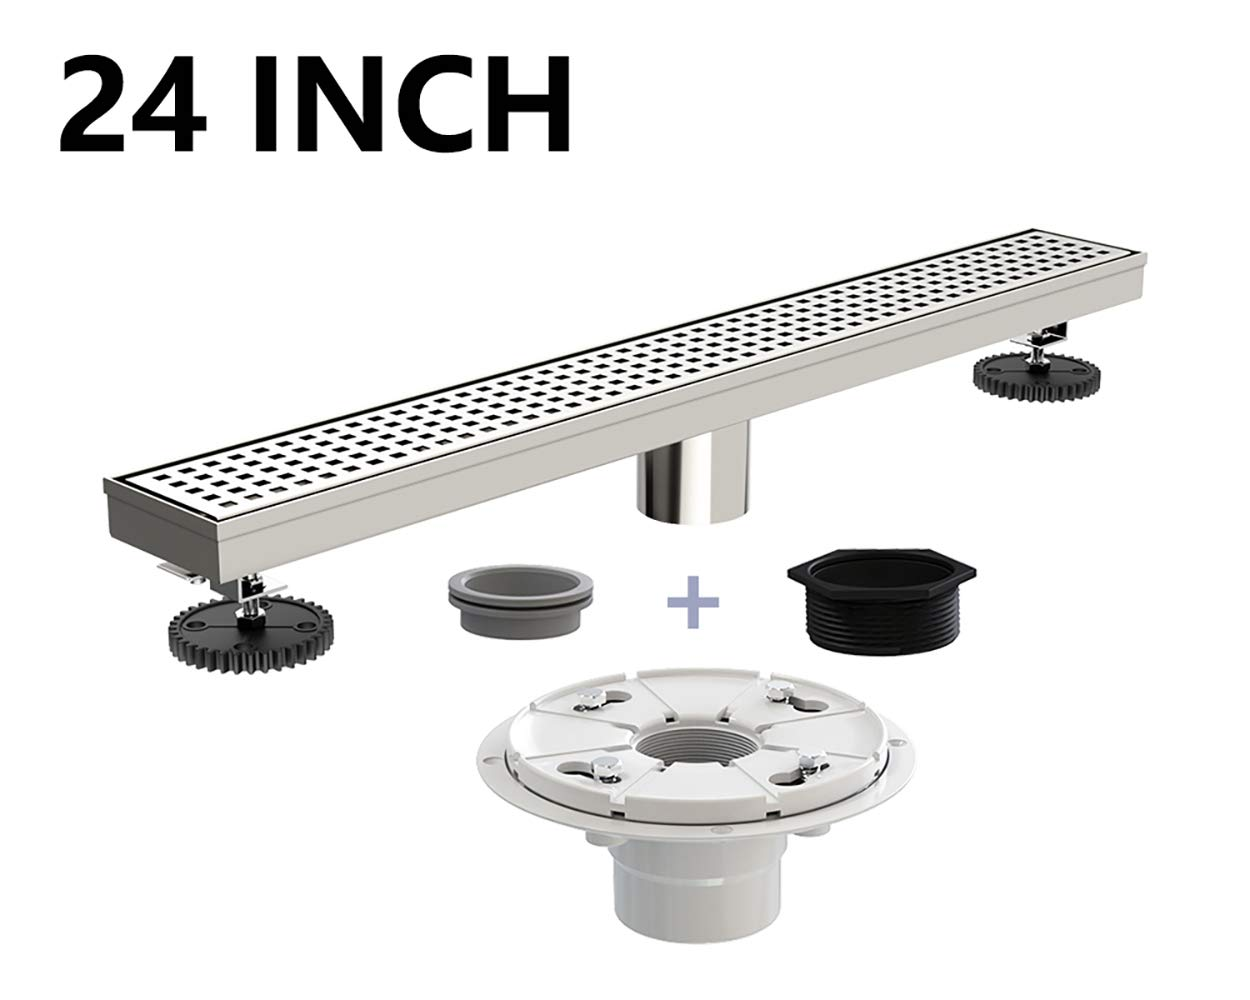 Ushower Linear Shower Drain 24 Inch, Square Pattern Grate Brushed Nickel Stainless Steel Linear Drain with Drain flange kit by Ushower